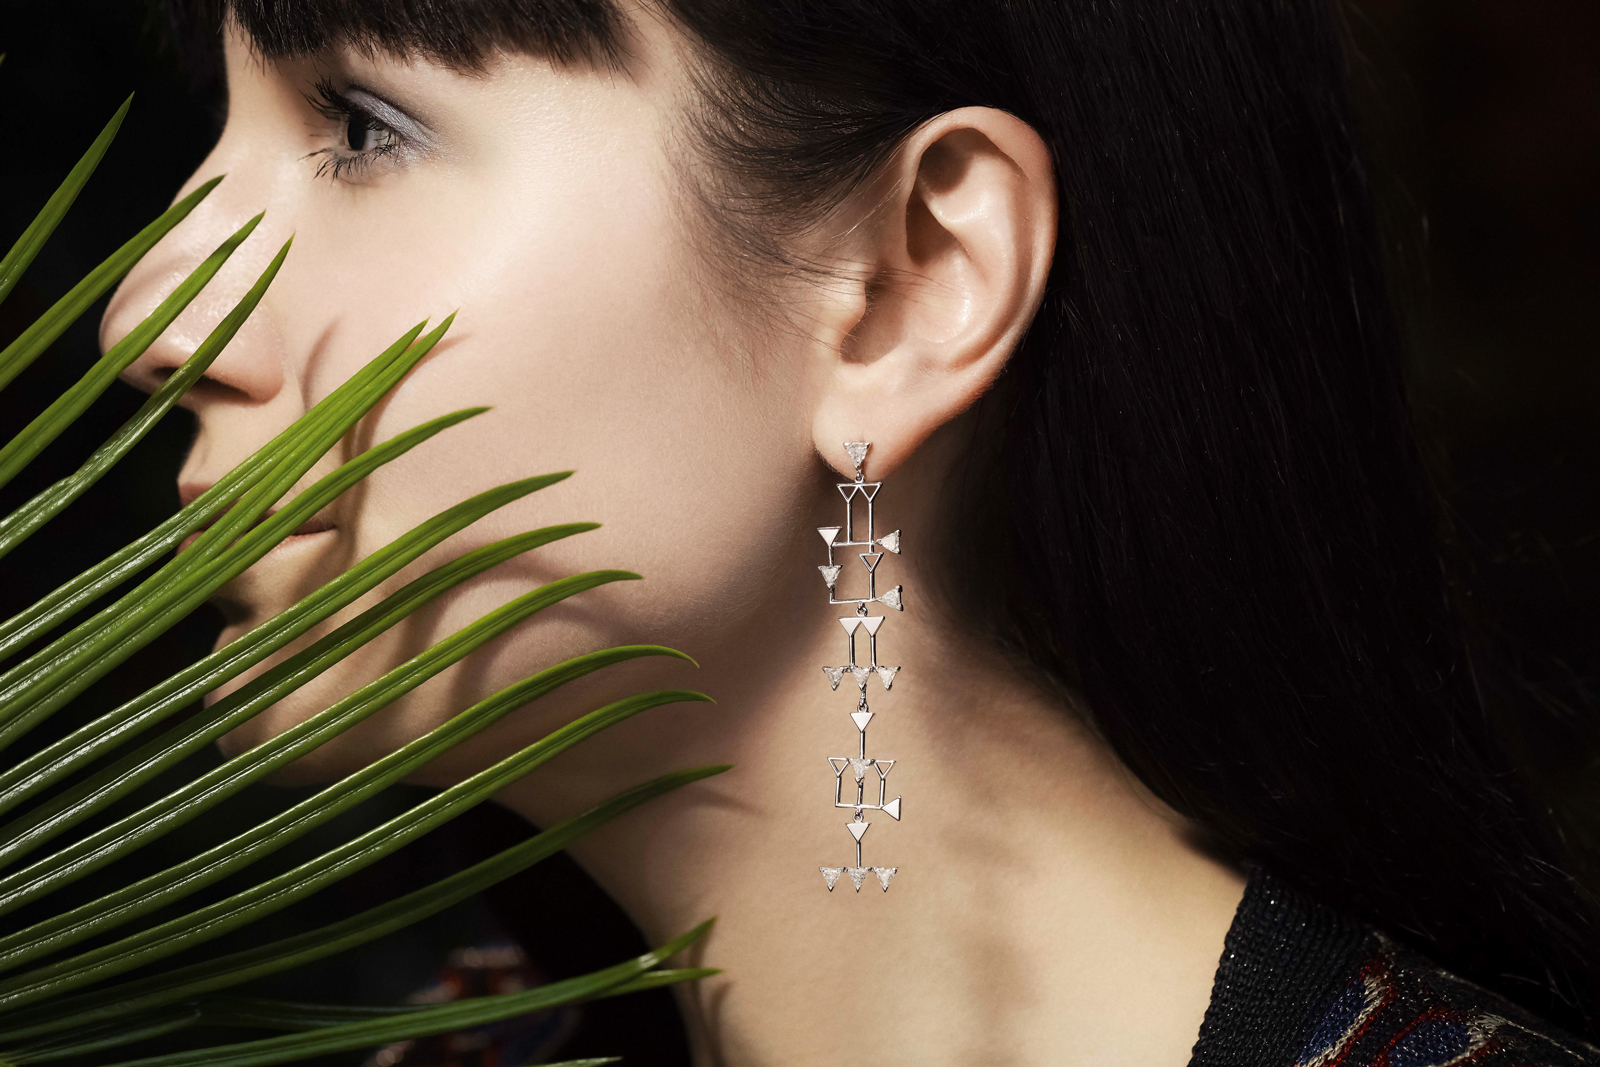 Julien Riad Sahyoun 'Babylon' collection earring. Photo: Simon Martner for katerinaperez.com